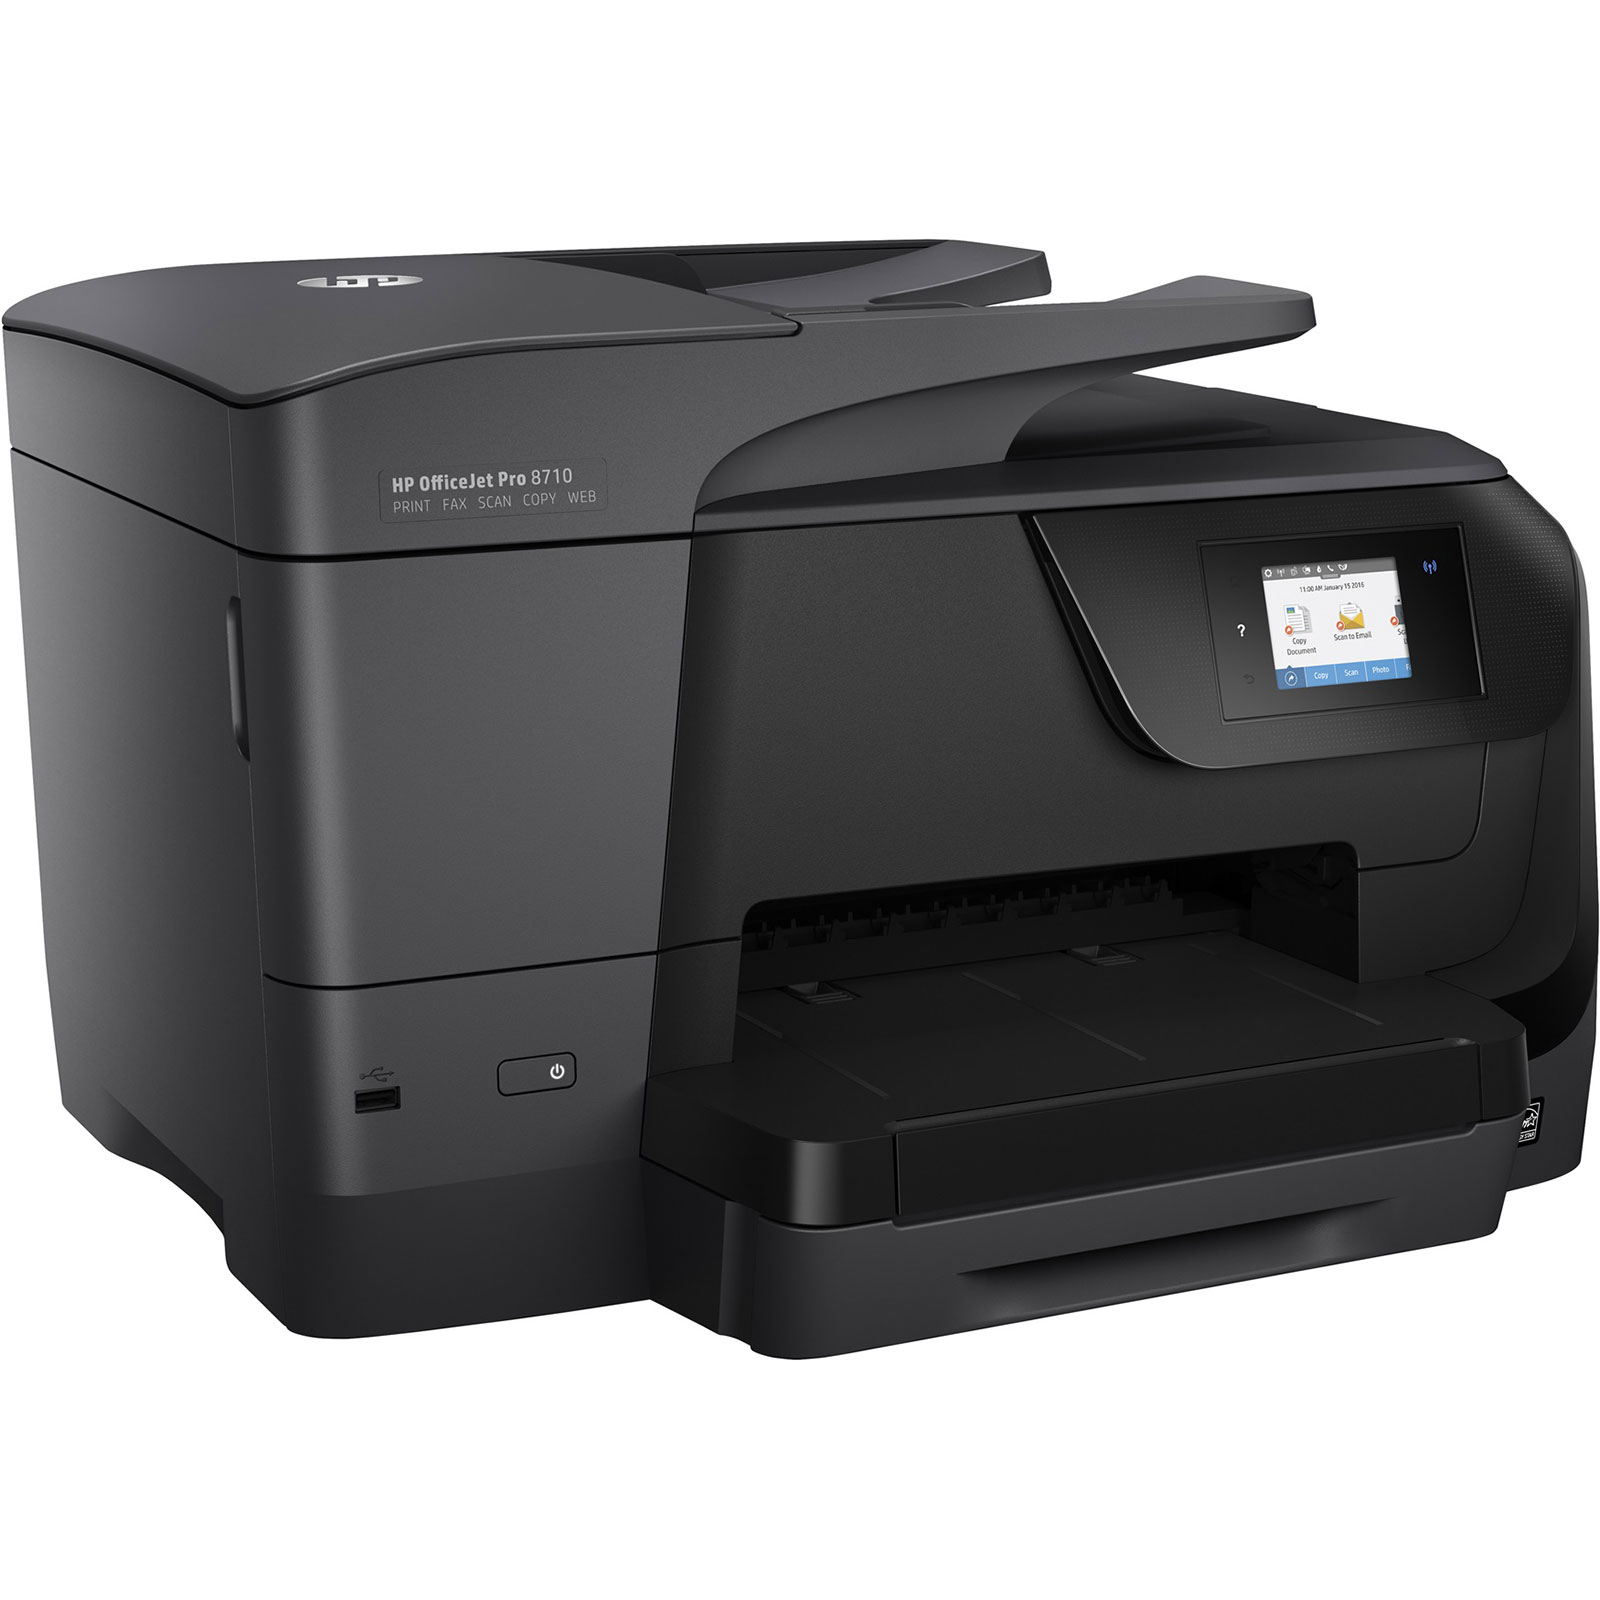 hp officejet 8710 owners manual